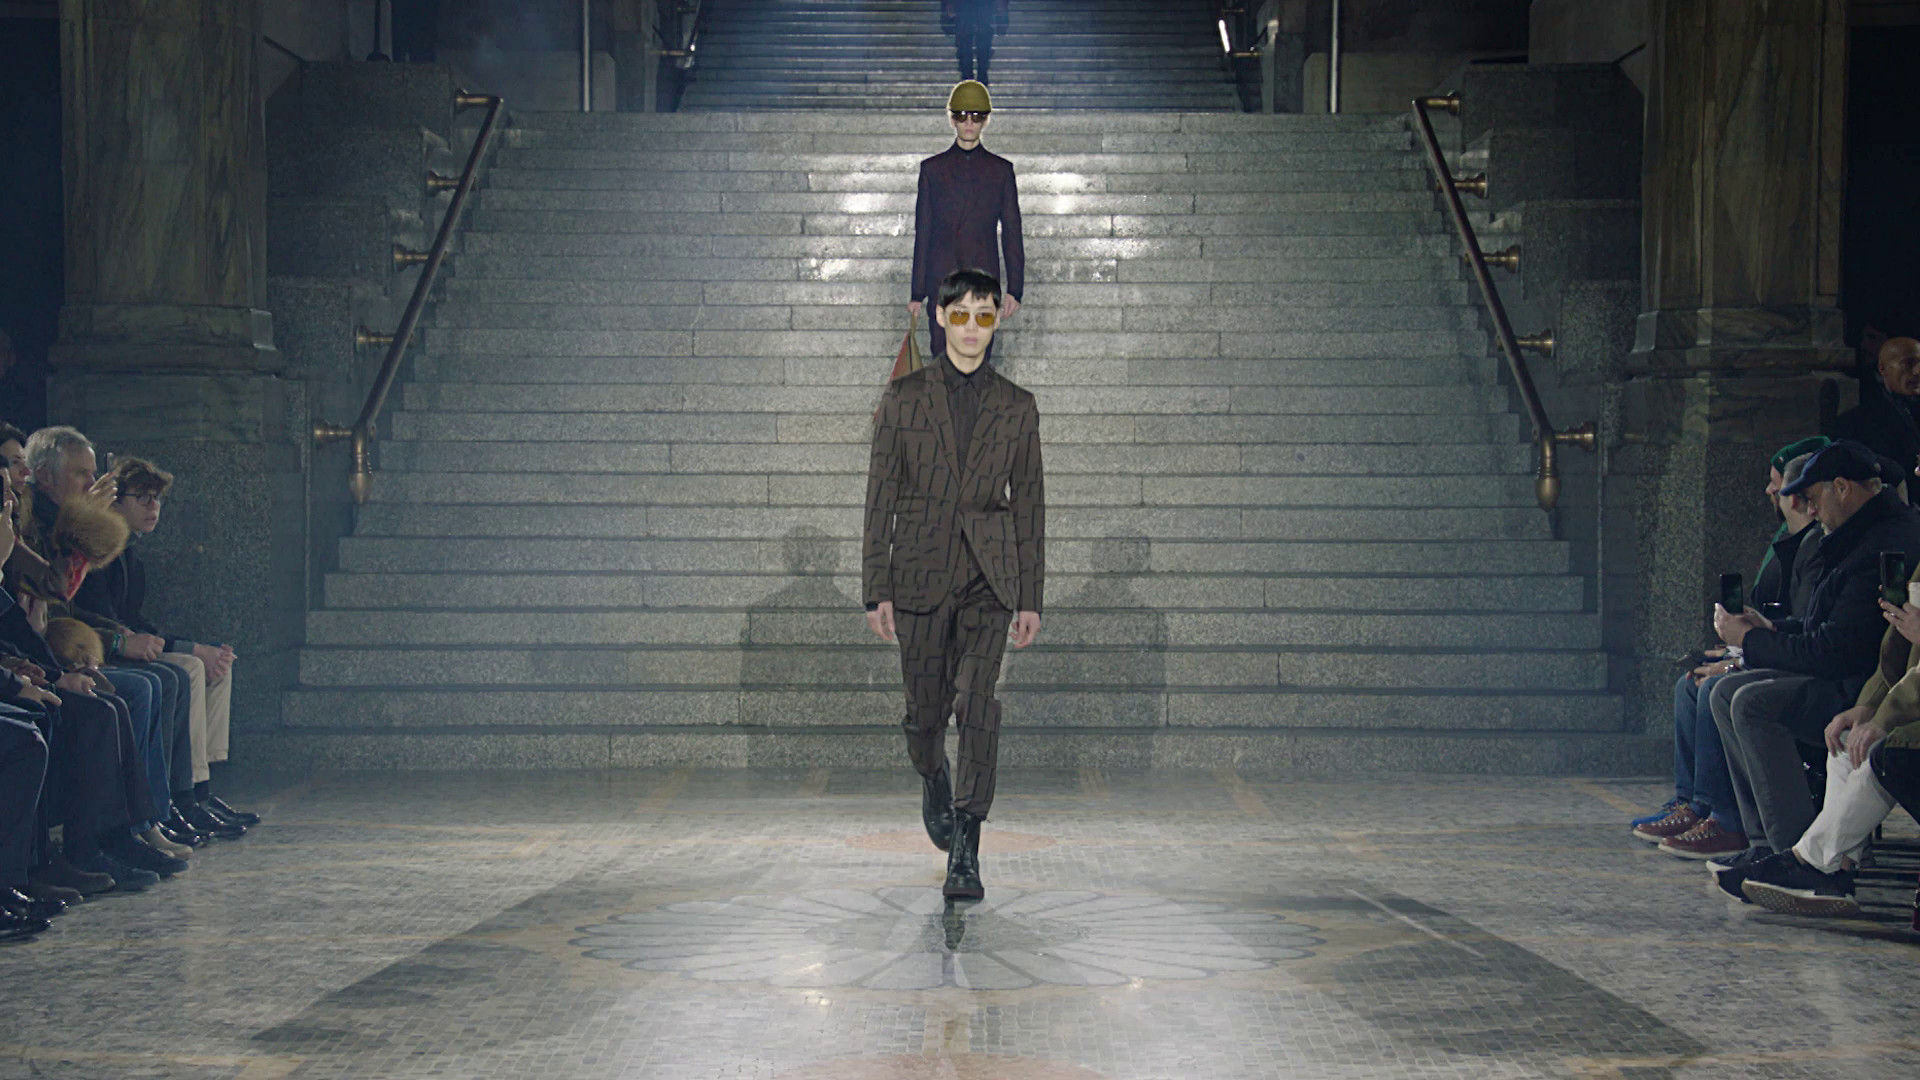 Ermenegildo Zegna Fall Winter Collection 2019 - Milan Fashion Show